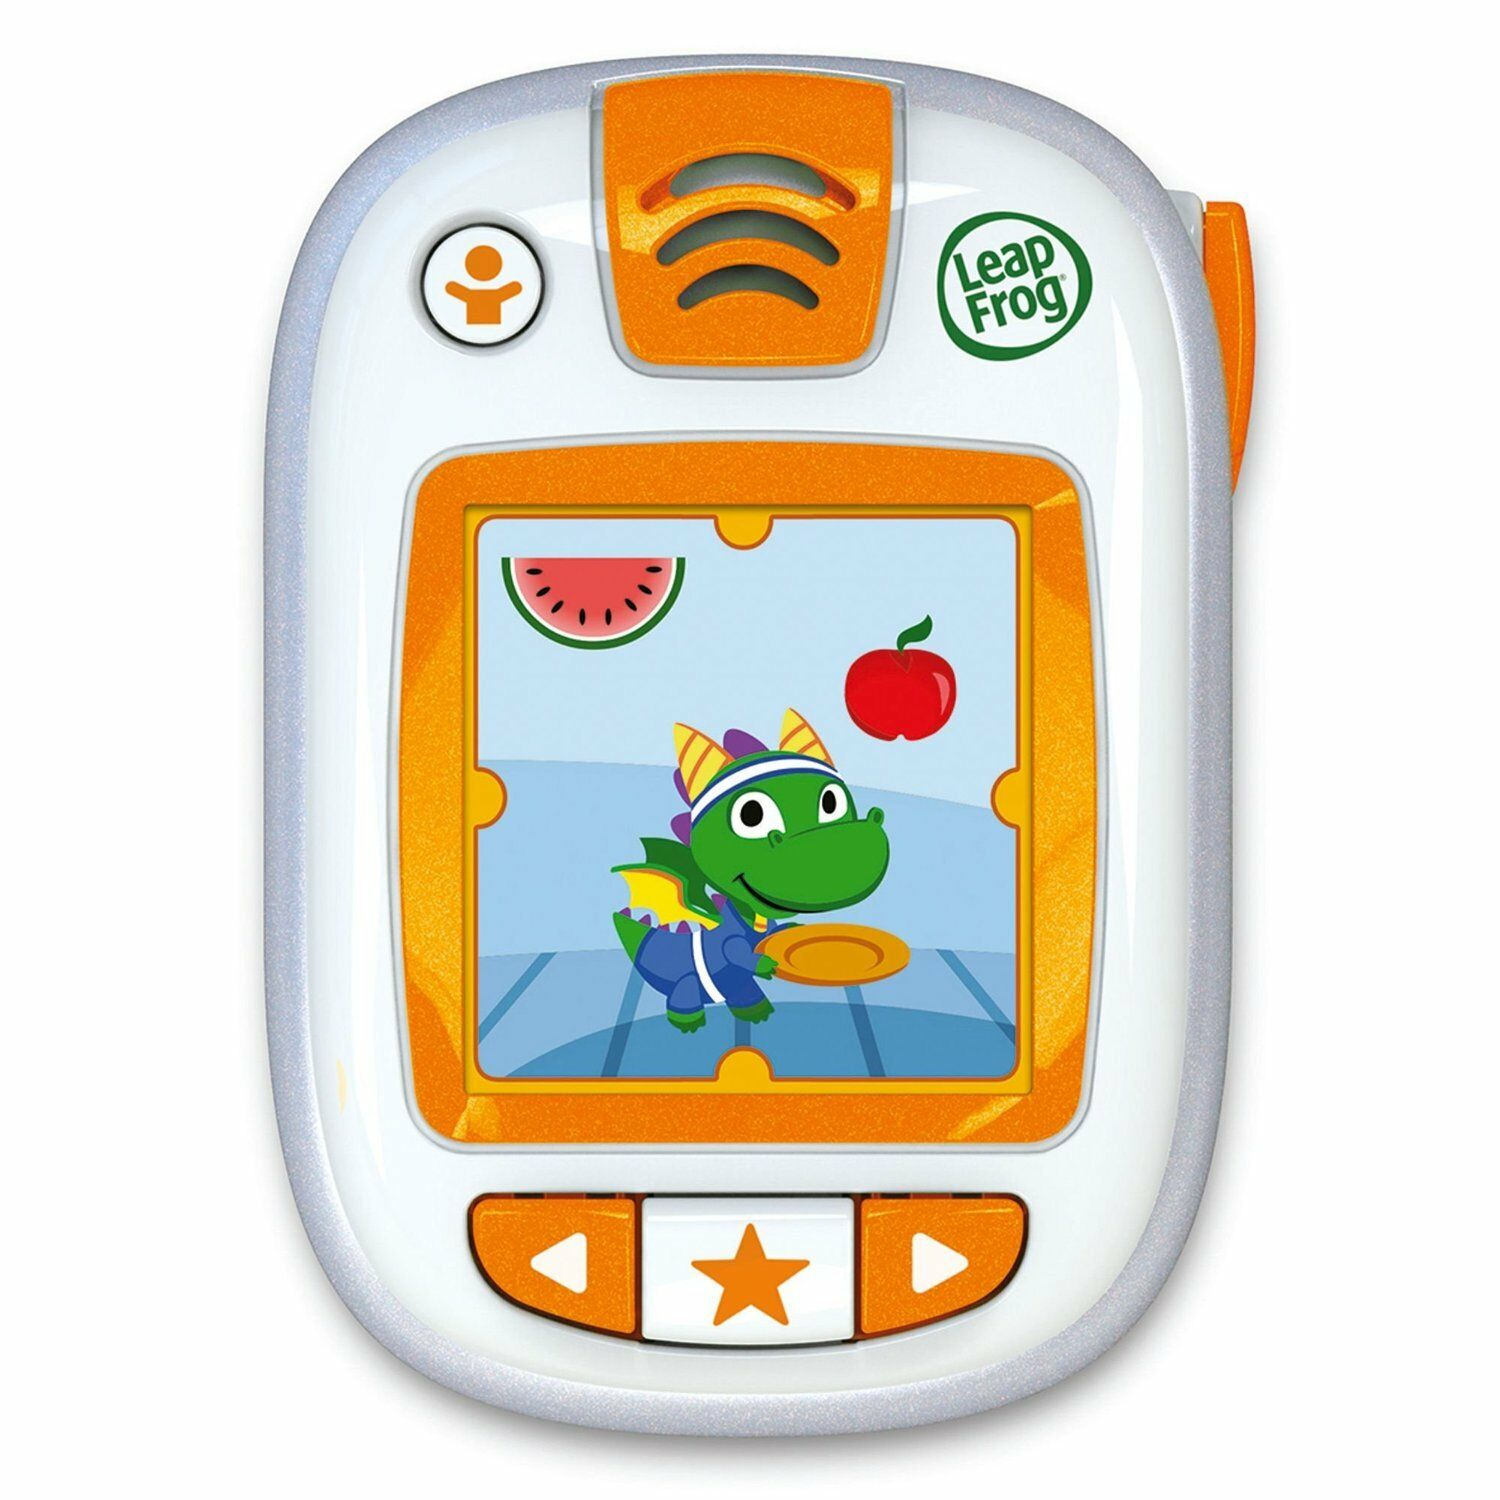 LeapFrog LeapBand orange Kids Leap Band Activity Watch Ages 4+ Years New Toy Boy